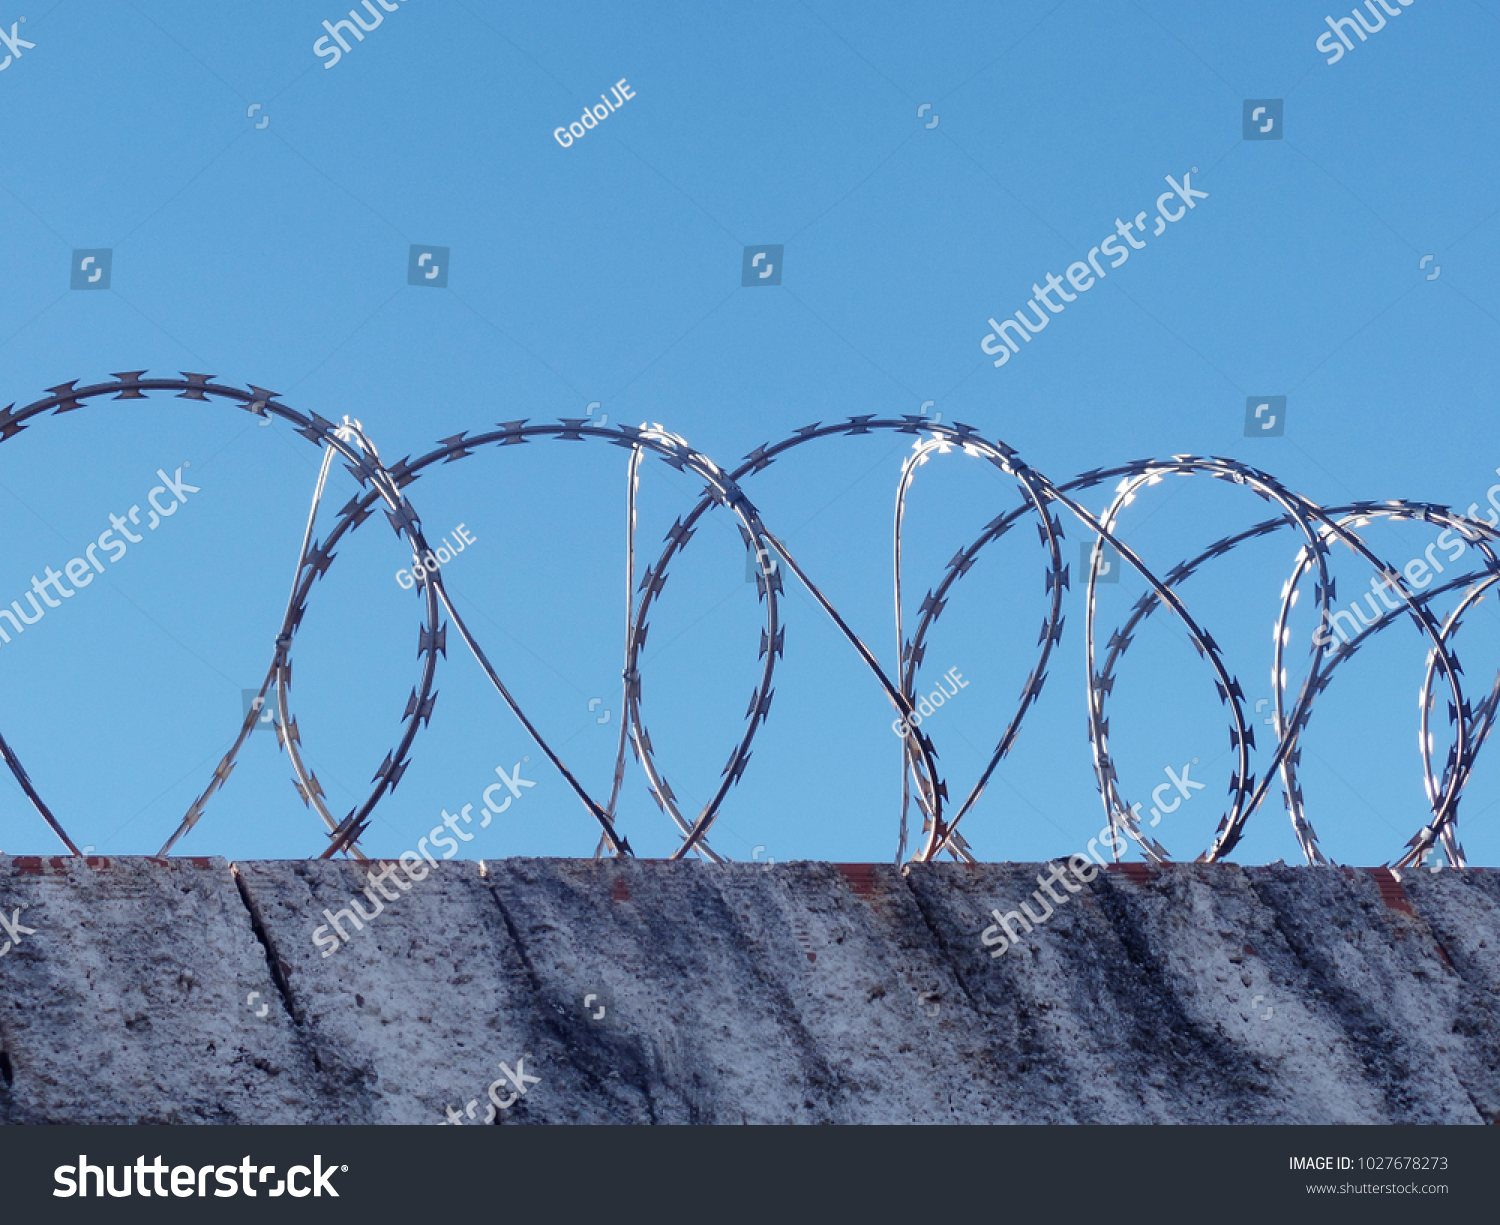 Safety Danger Wall Spiral Barbed Wire Stock Photo (Royalty Free ...